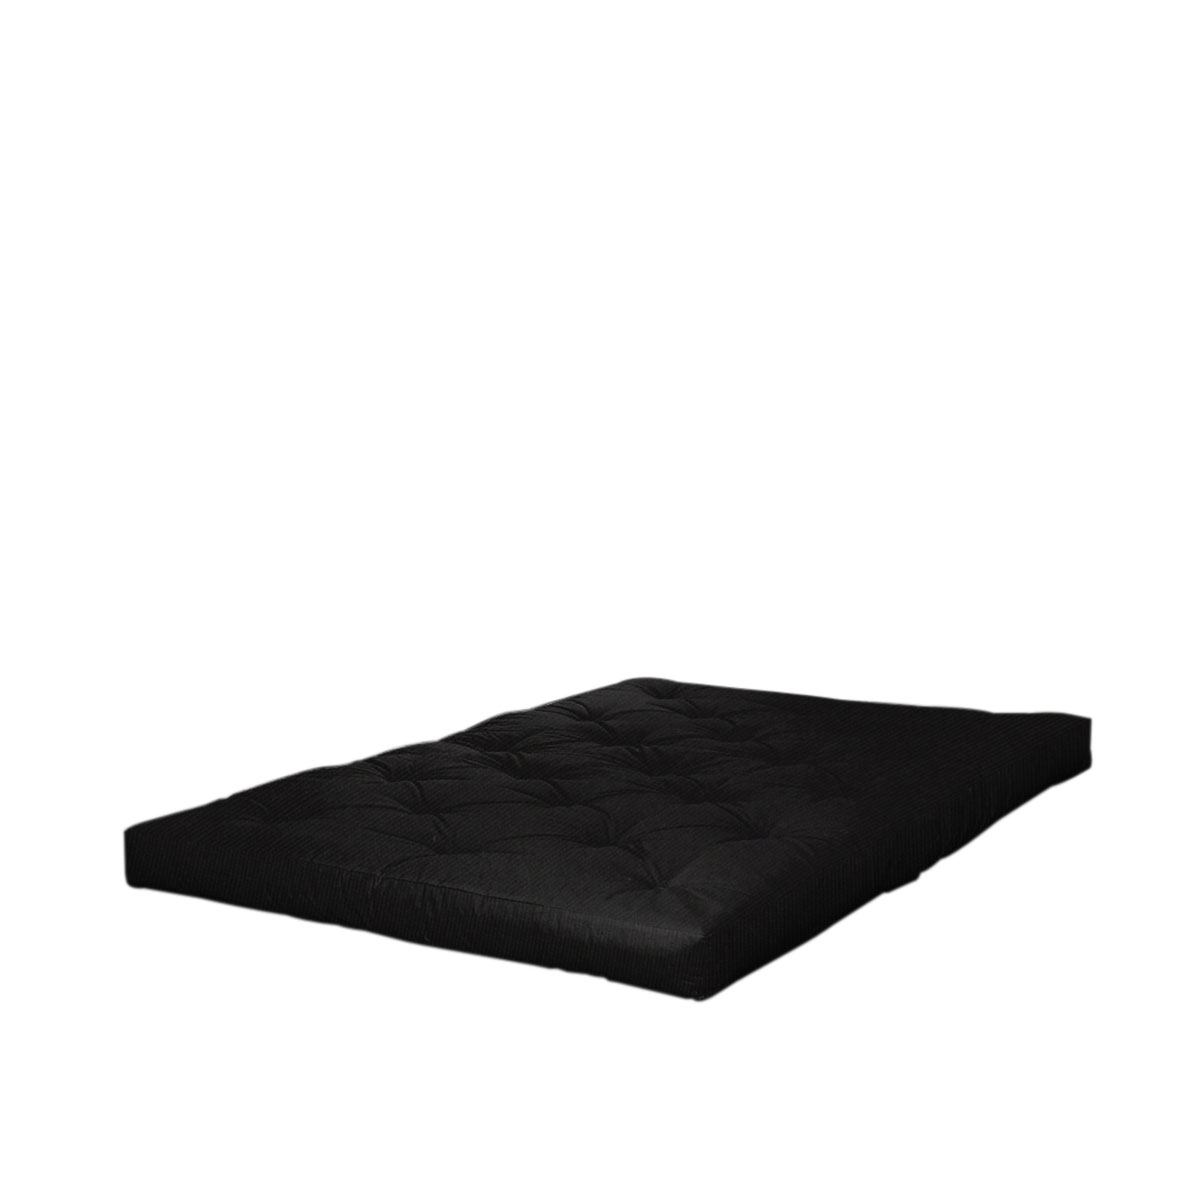 KARUP DESIGN Futon matrace Sandwich Double Latex 80 – Black